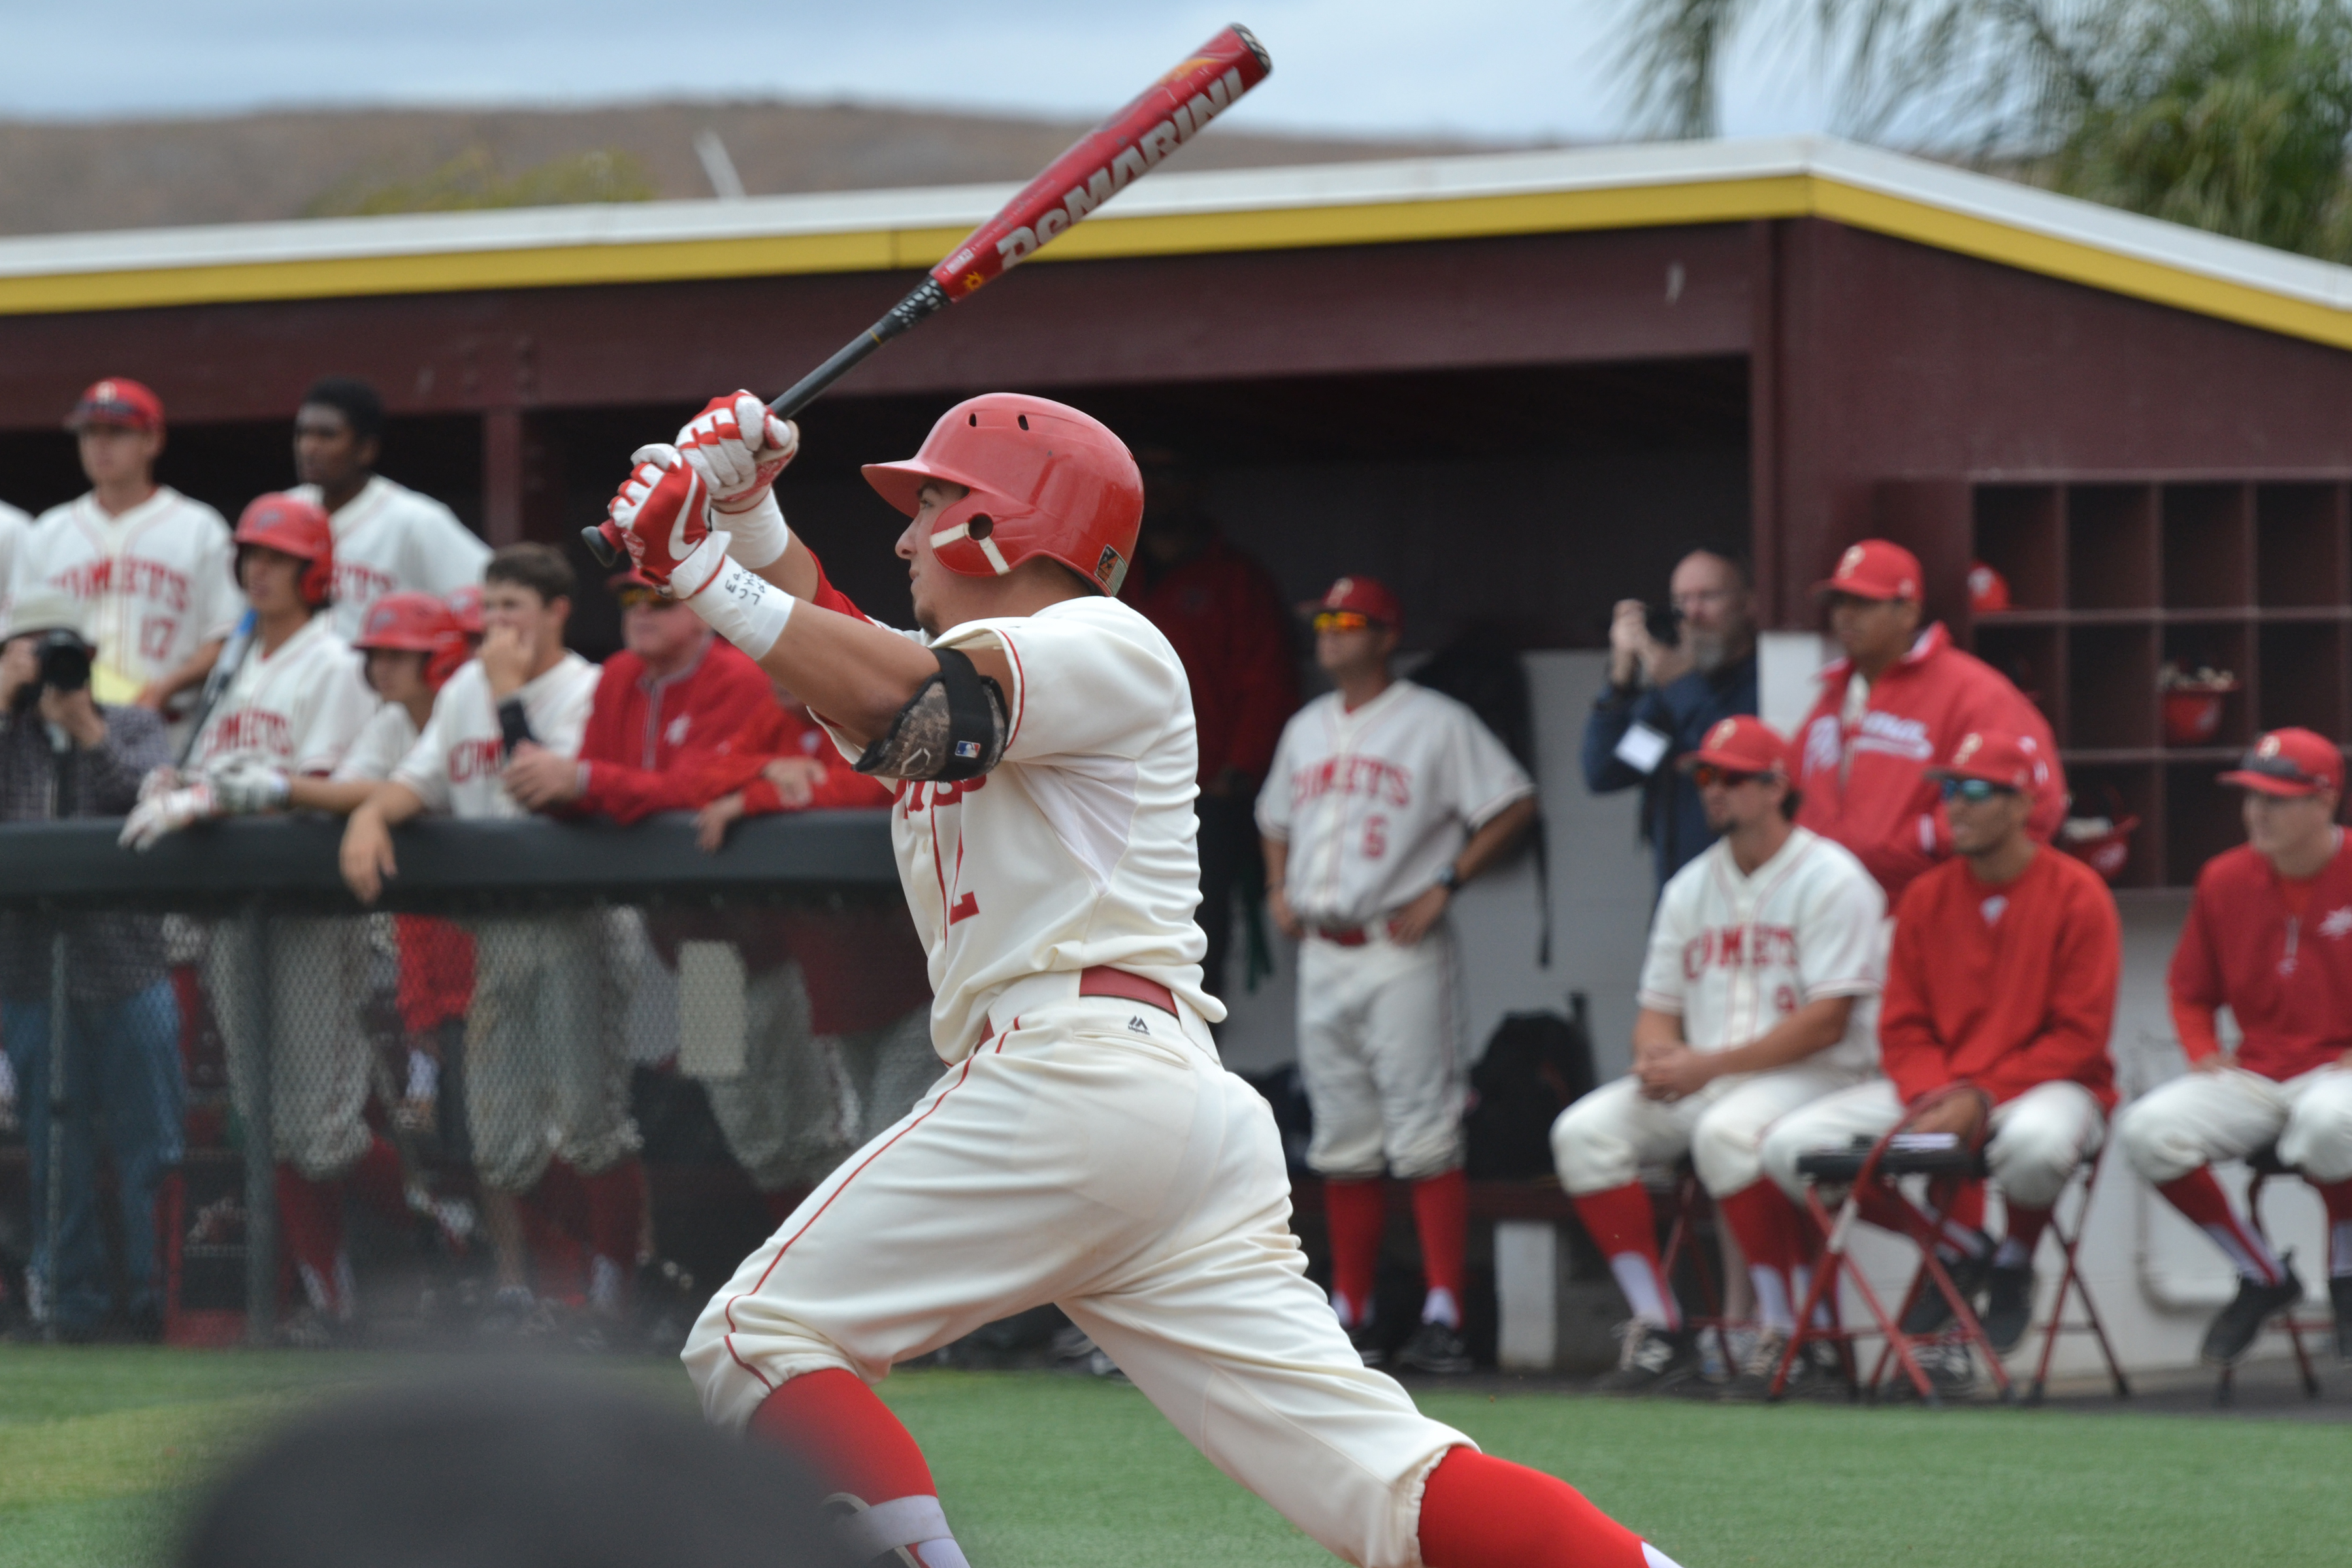 Infeilder Mitchell Moralez batting